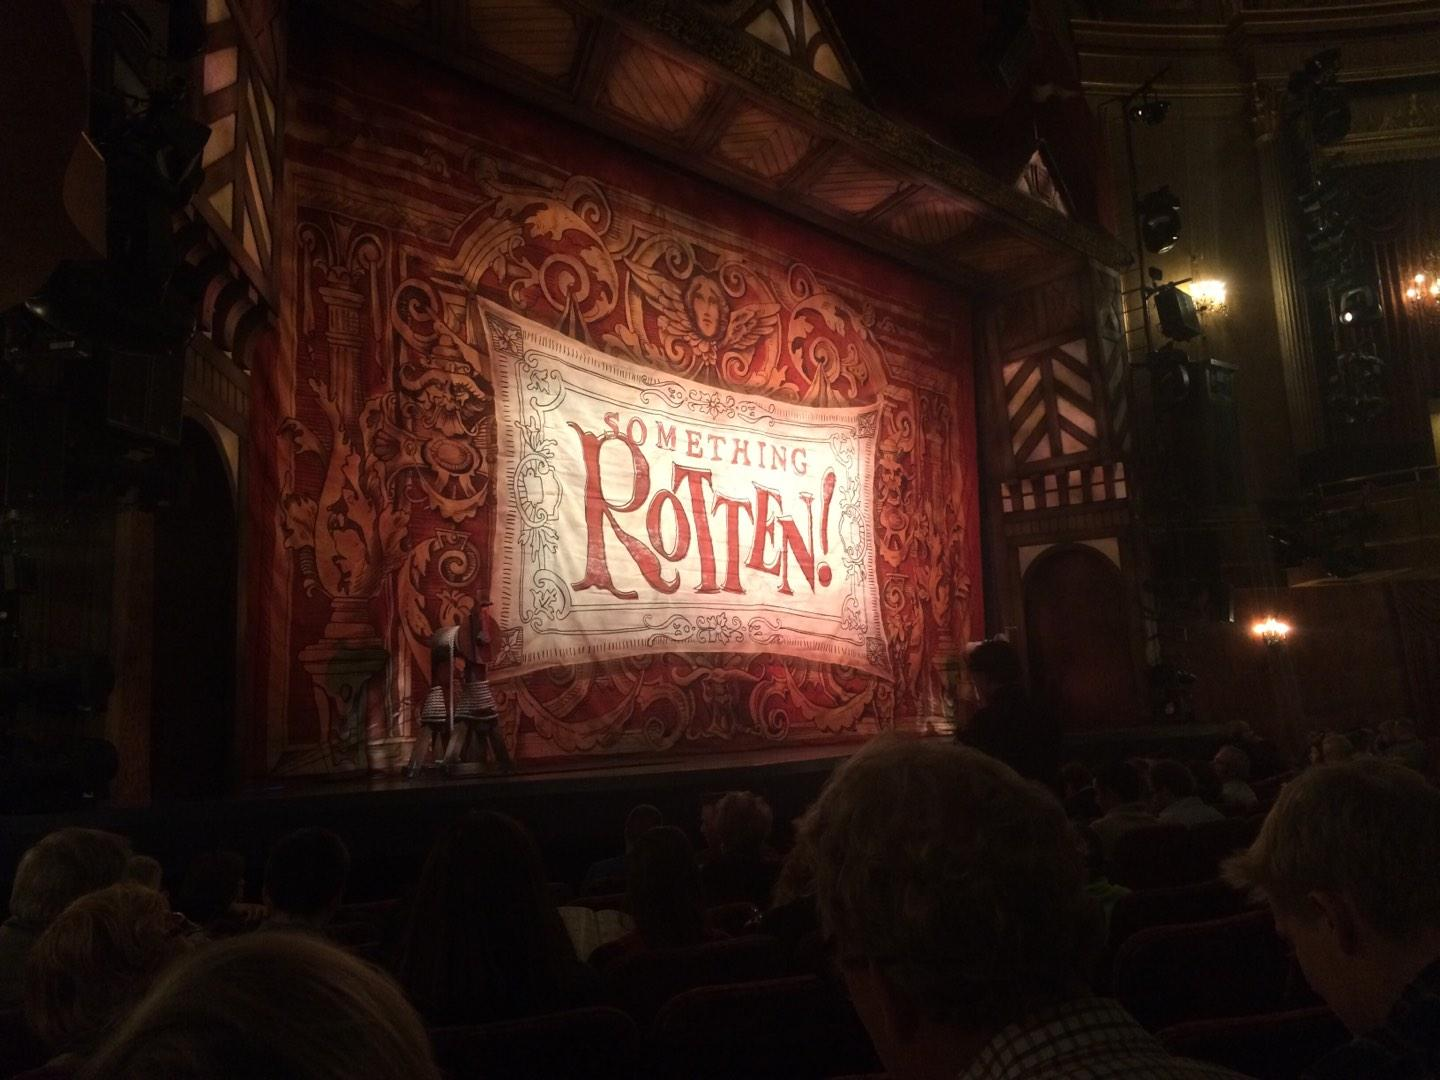 St. James Theatre Section Orchestra L Row J Seat 19